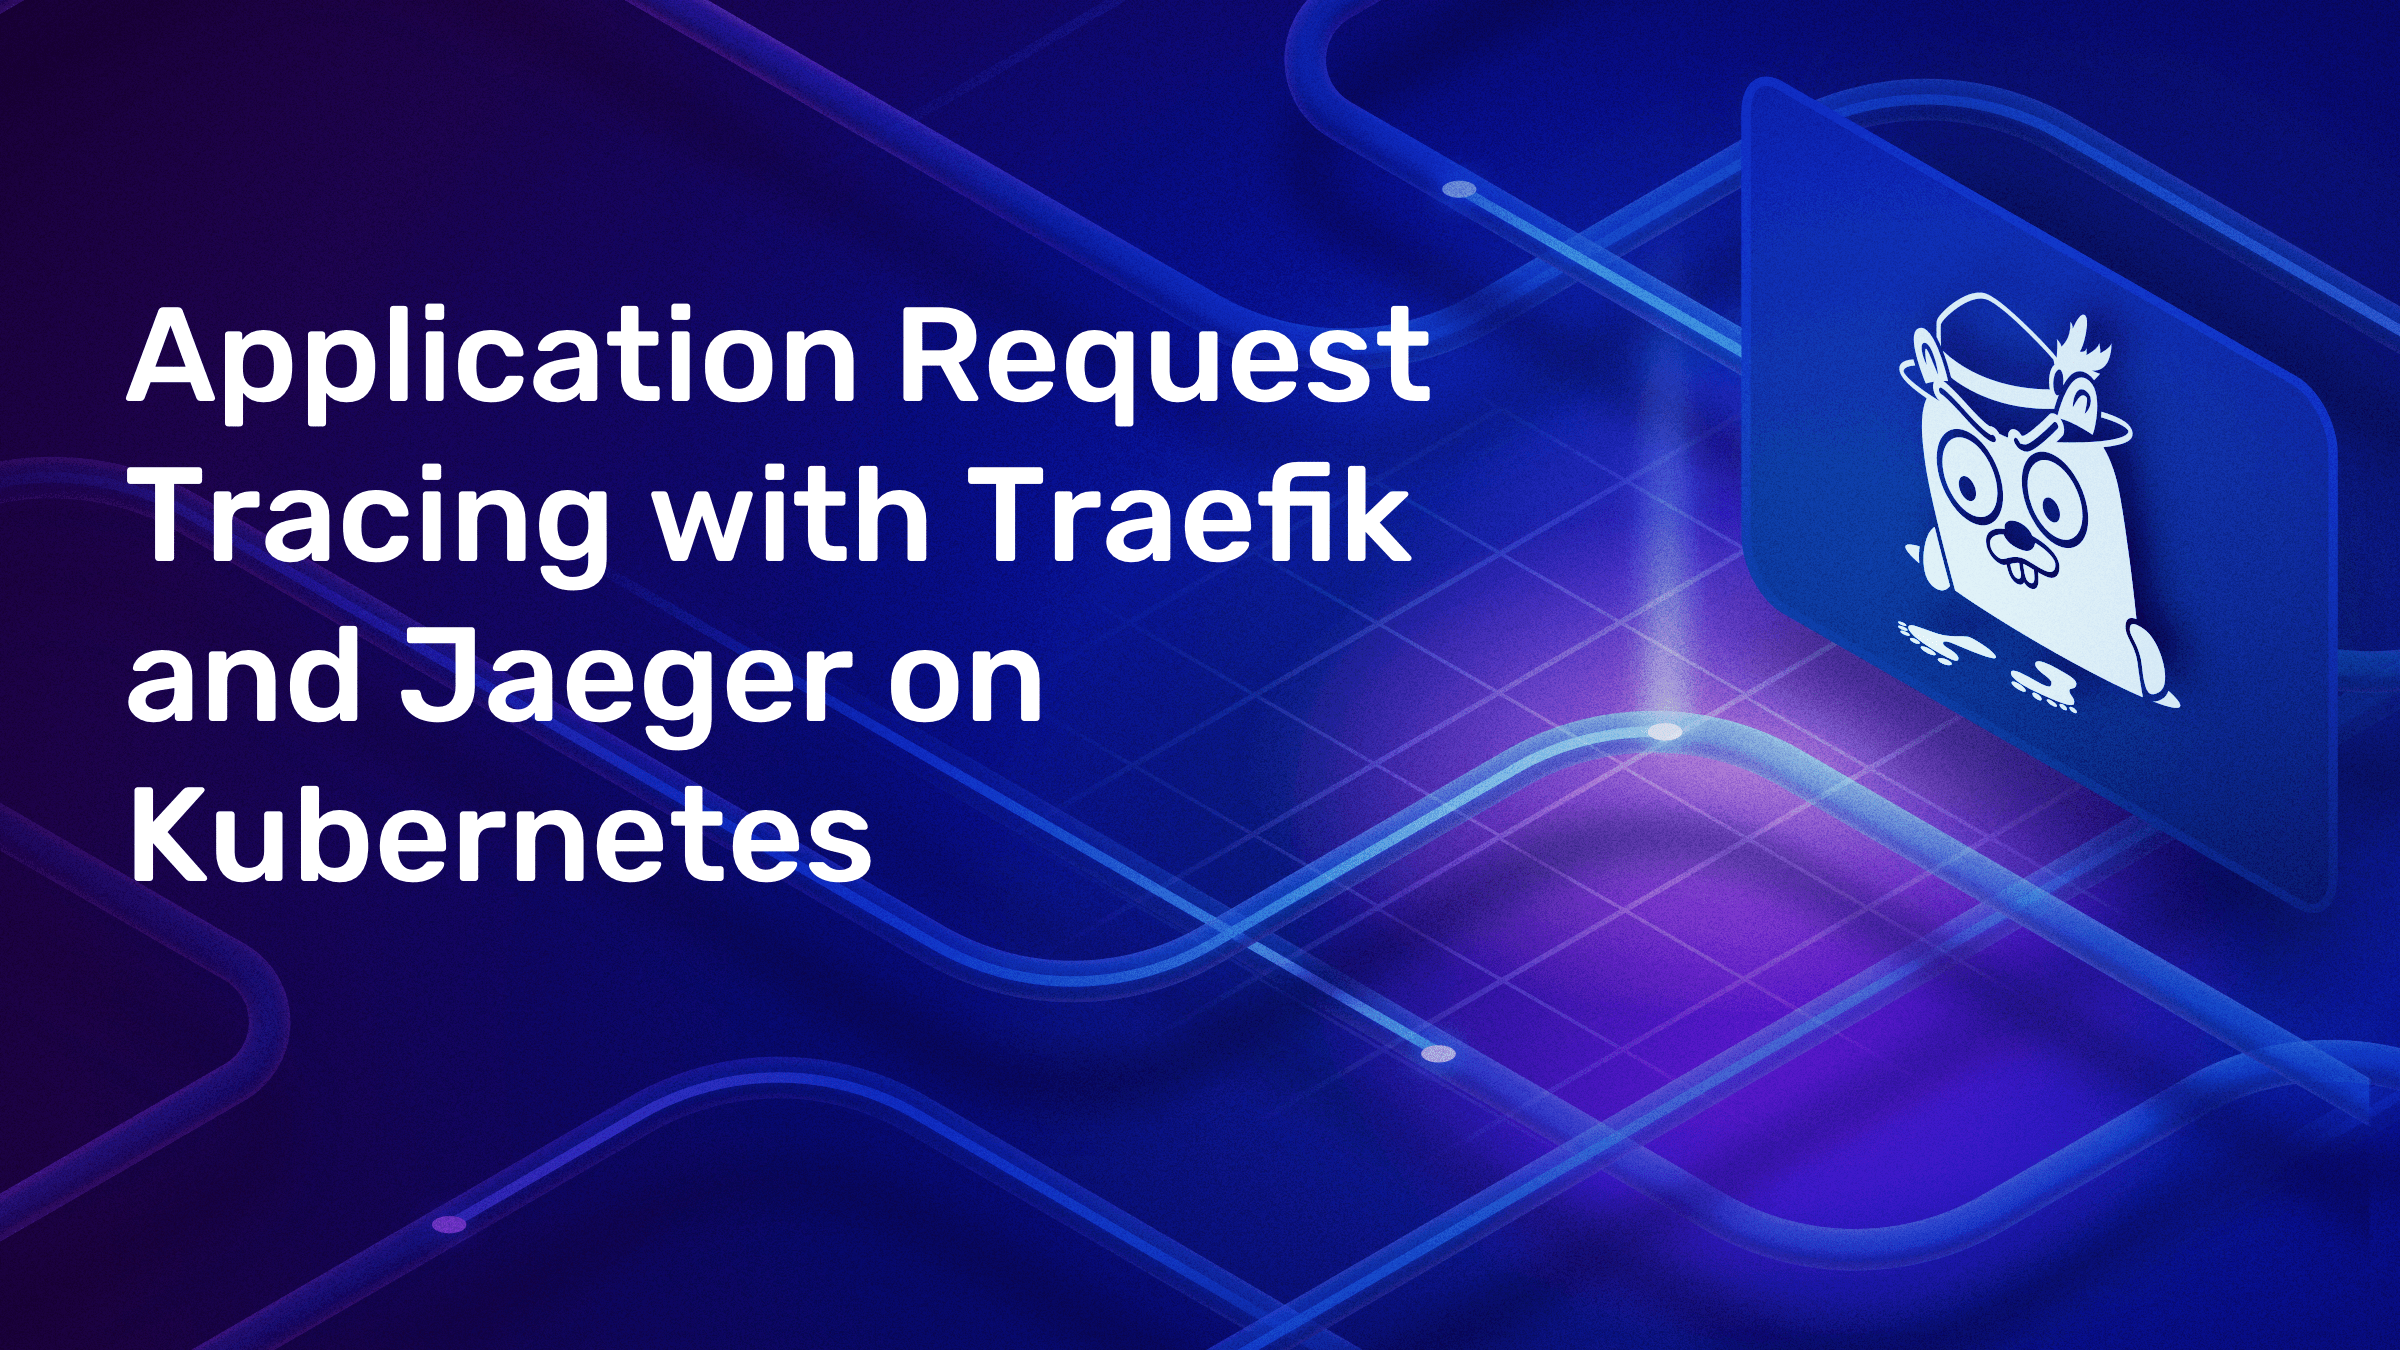 Application Request Tracing with Traefik and Jaeger on Kubernetes